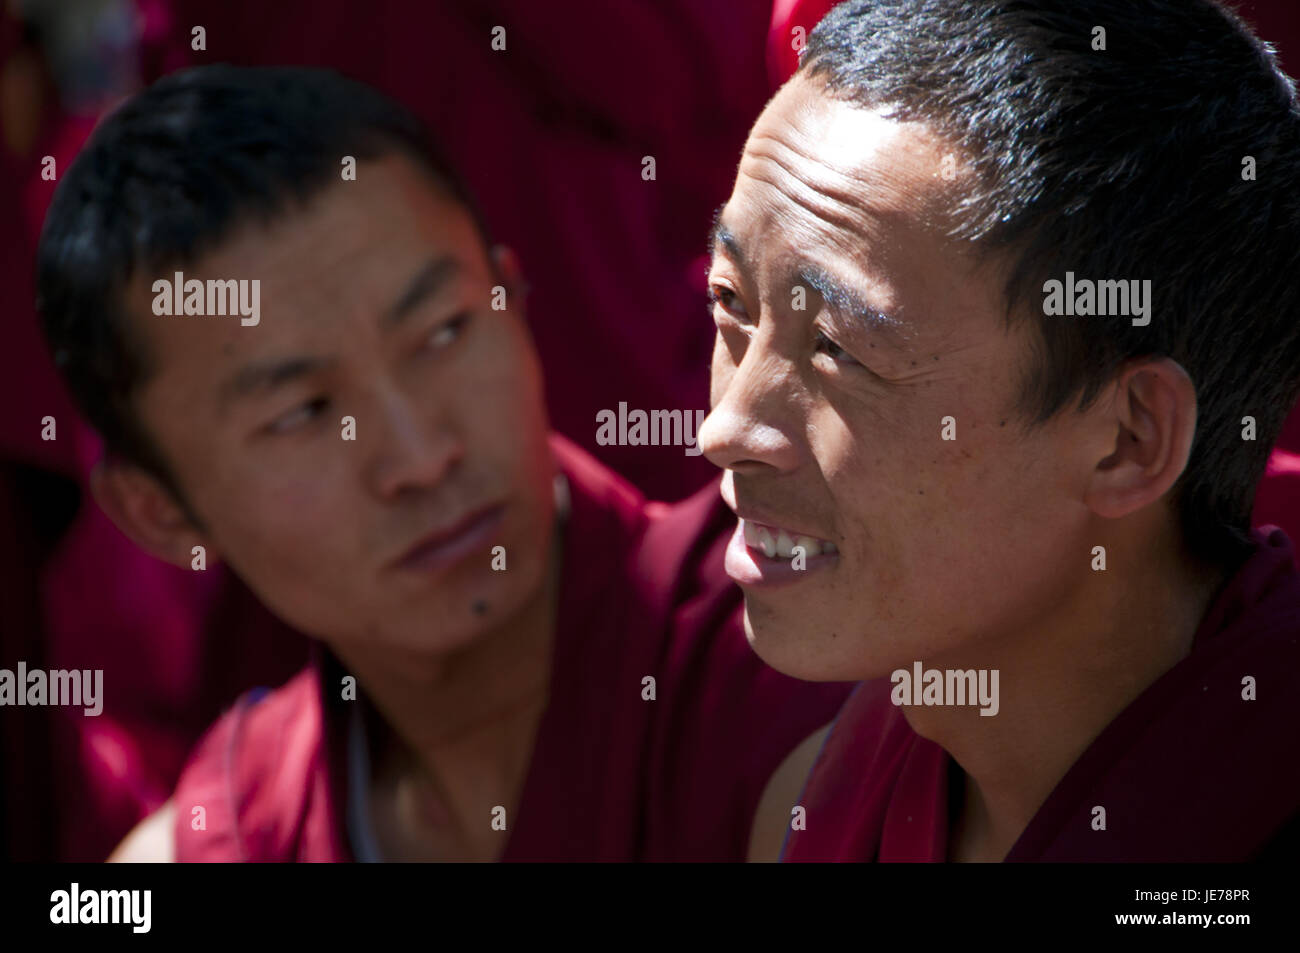 Young monks with the everyday discussion hour in the saga temple, Lhasa, Tibet, Asia, - Stock Image